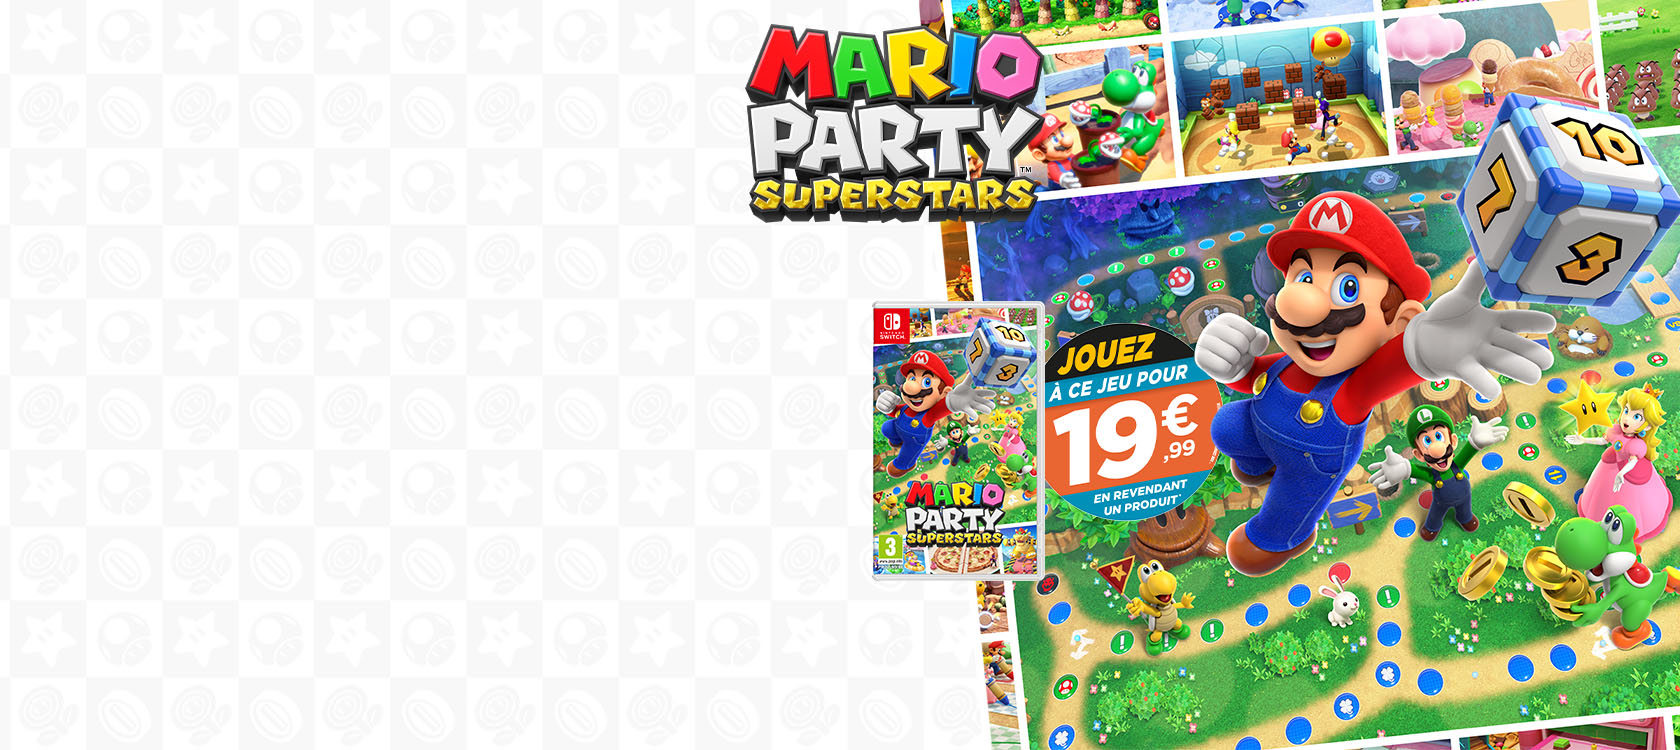 https://www.micromania.fr/on/demandware.static/-/Sites-Micromania-Library/default/dwf9d781fc/Herocarousel/large/mario-party-superstar-jouez-a-background-desktop-normal.jpg